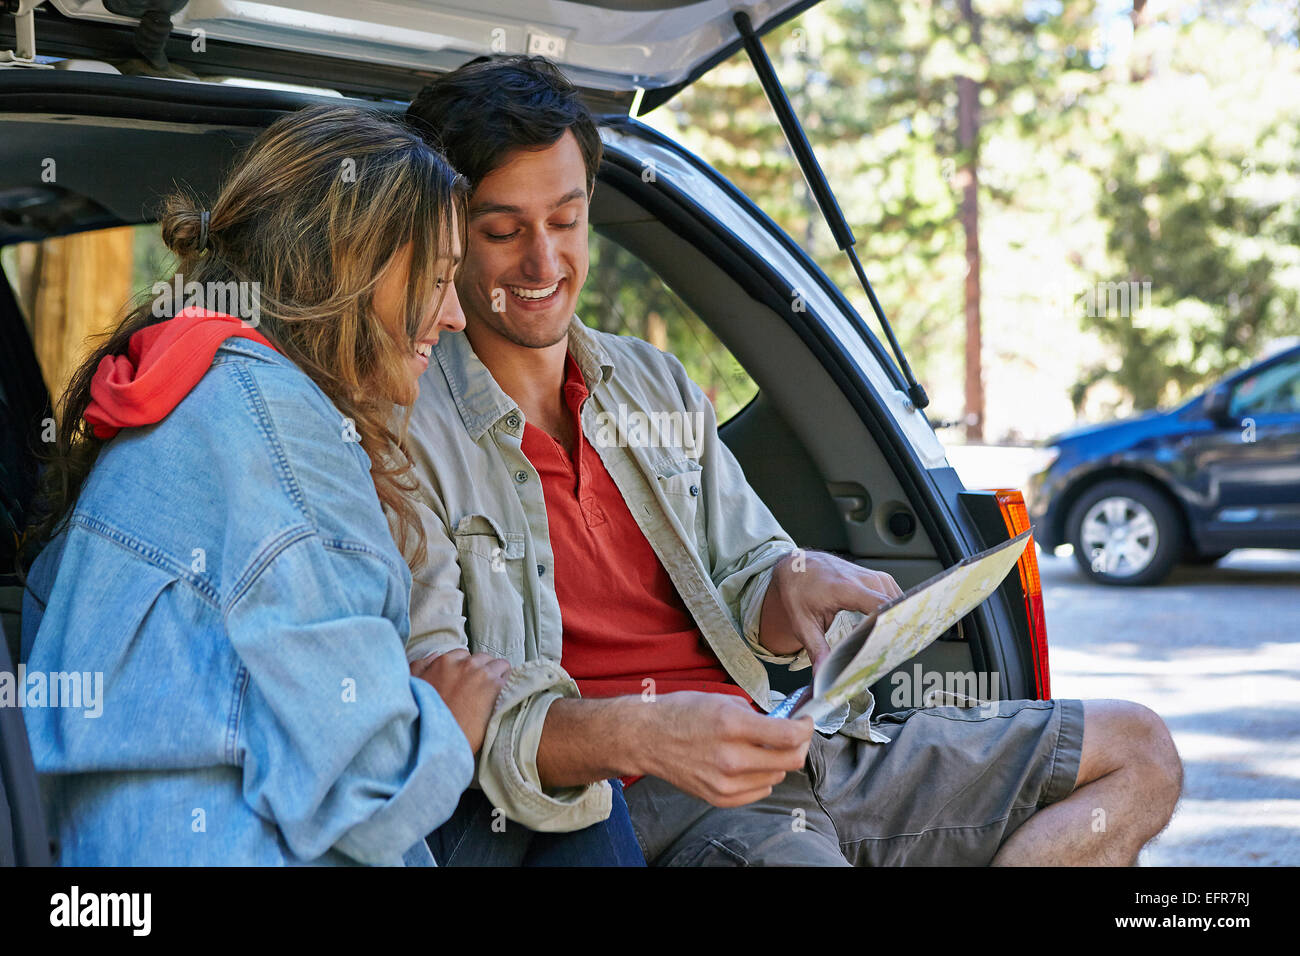 Young couple sitting on car boot looking at map, Los Angeles, California, USA - Stock Image